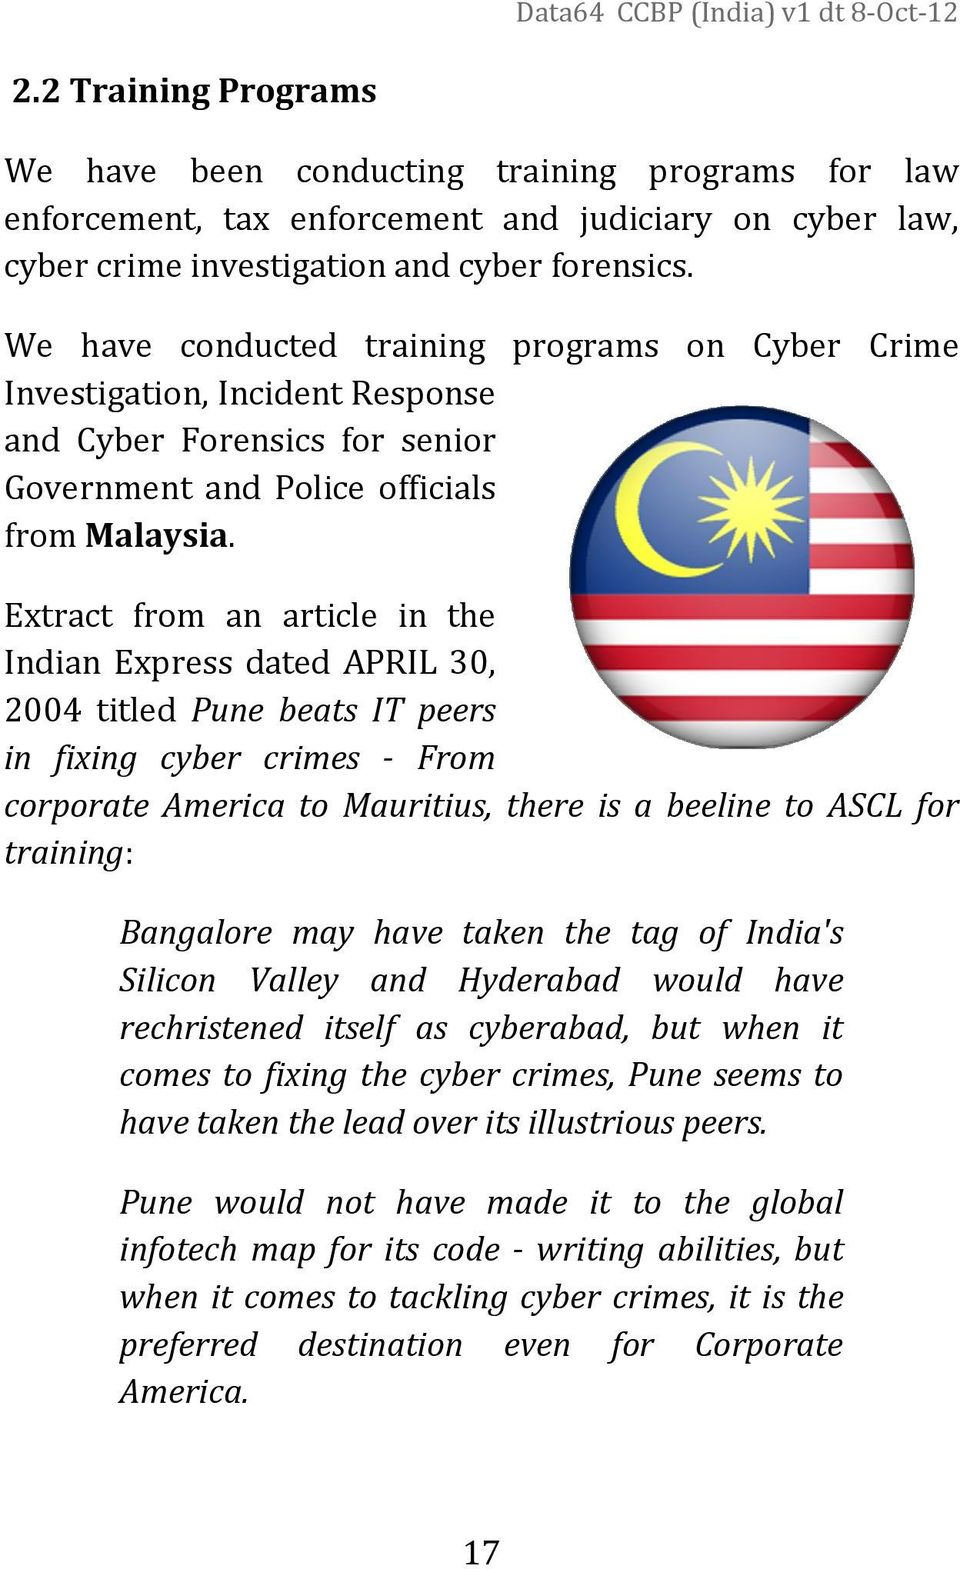 Extract from an article in the Indian Express dated APRIL 30, 2004 titled Pune beats IT peers in fixing cyber crimes - From corporate America to Mauritius, there is a beeline to ASCL for training: